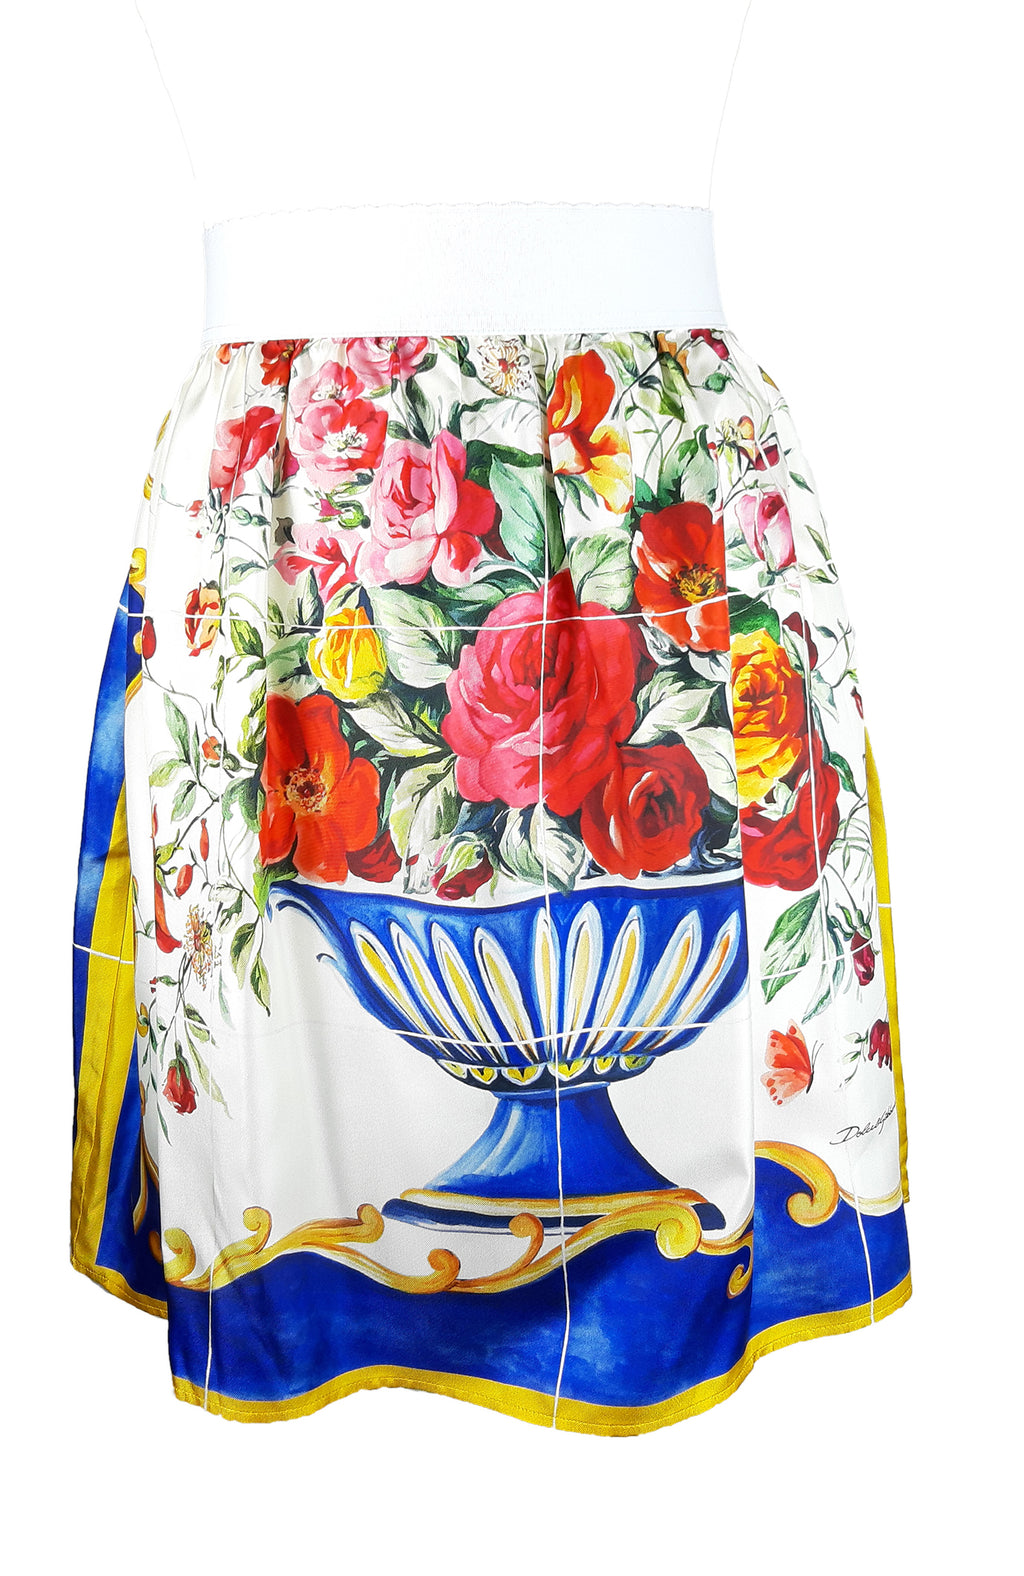 Dolce & Gabbana Floral Skirt in Silk with Elastic Waist Size 46 (IT) 40 (EU)